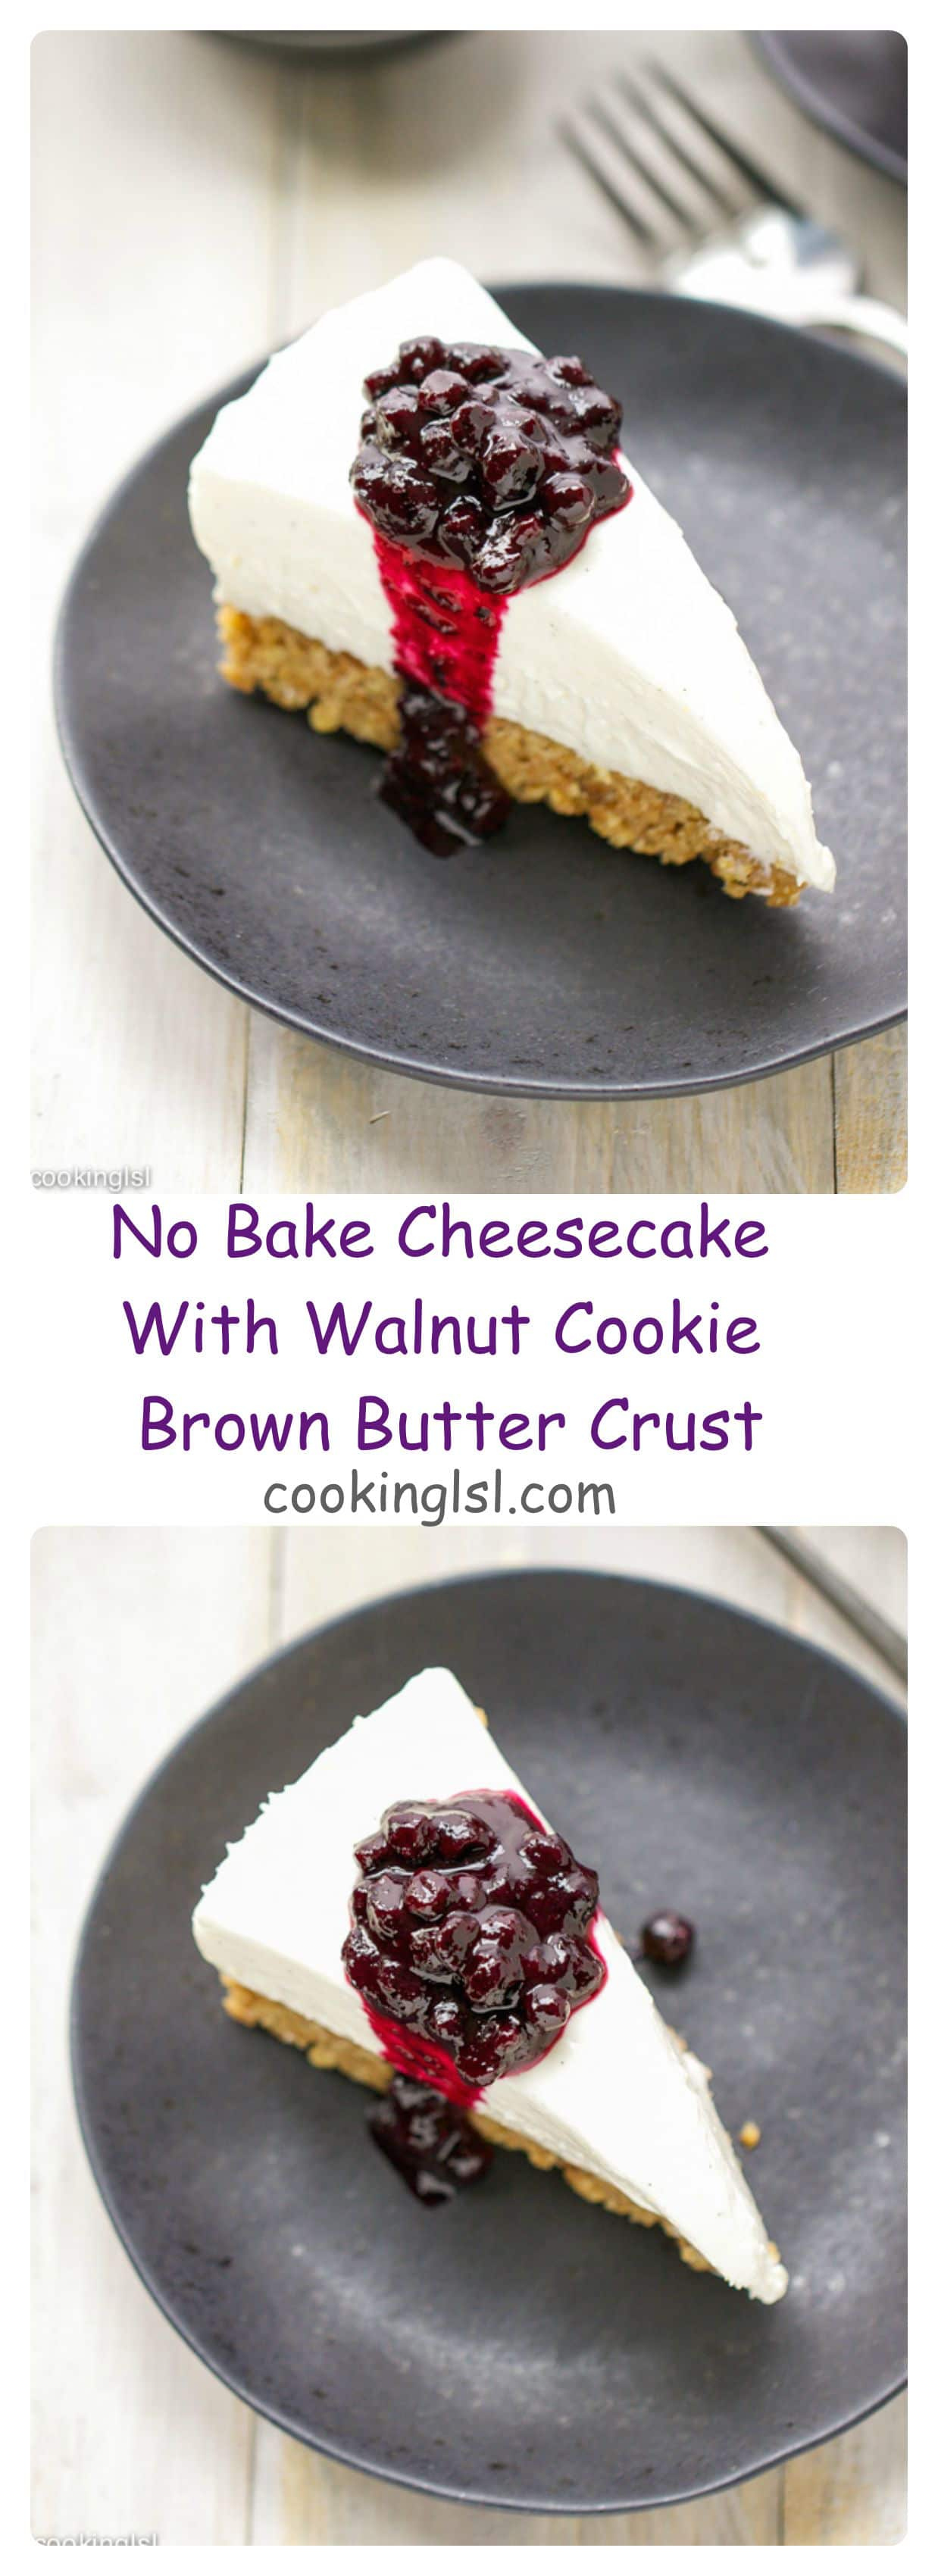 no-bake-cheesecake-with-walnut-cookie-brown-butter-crust